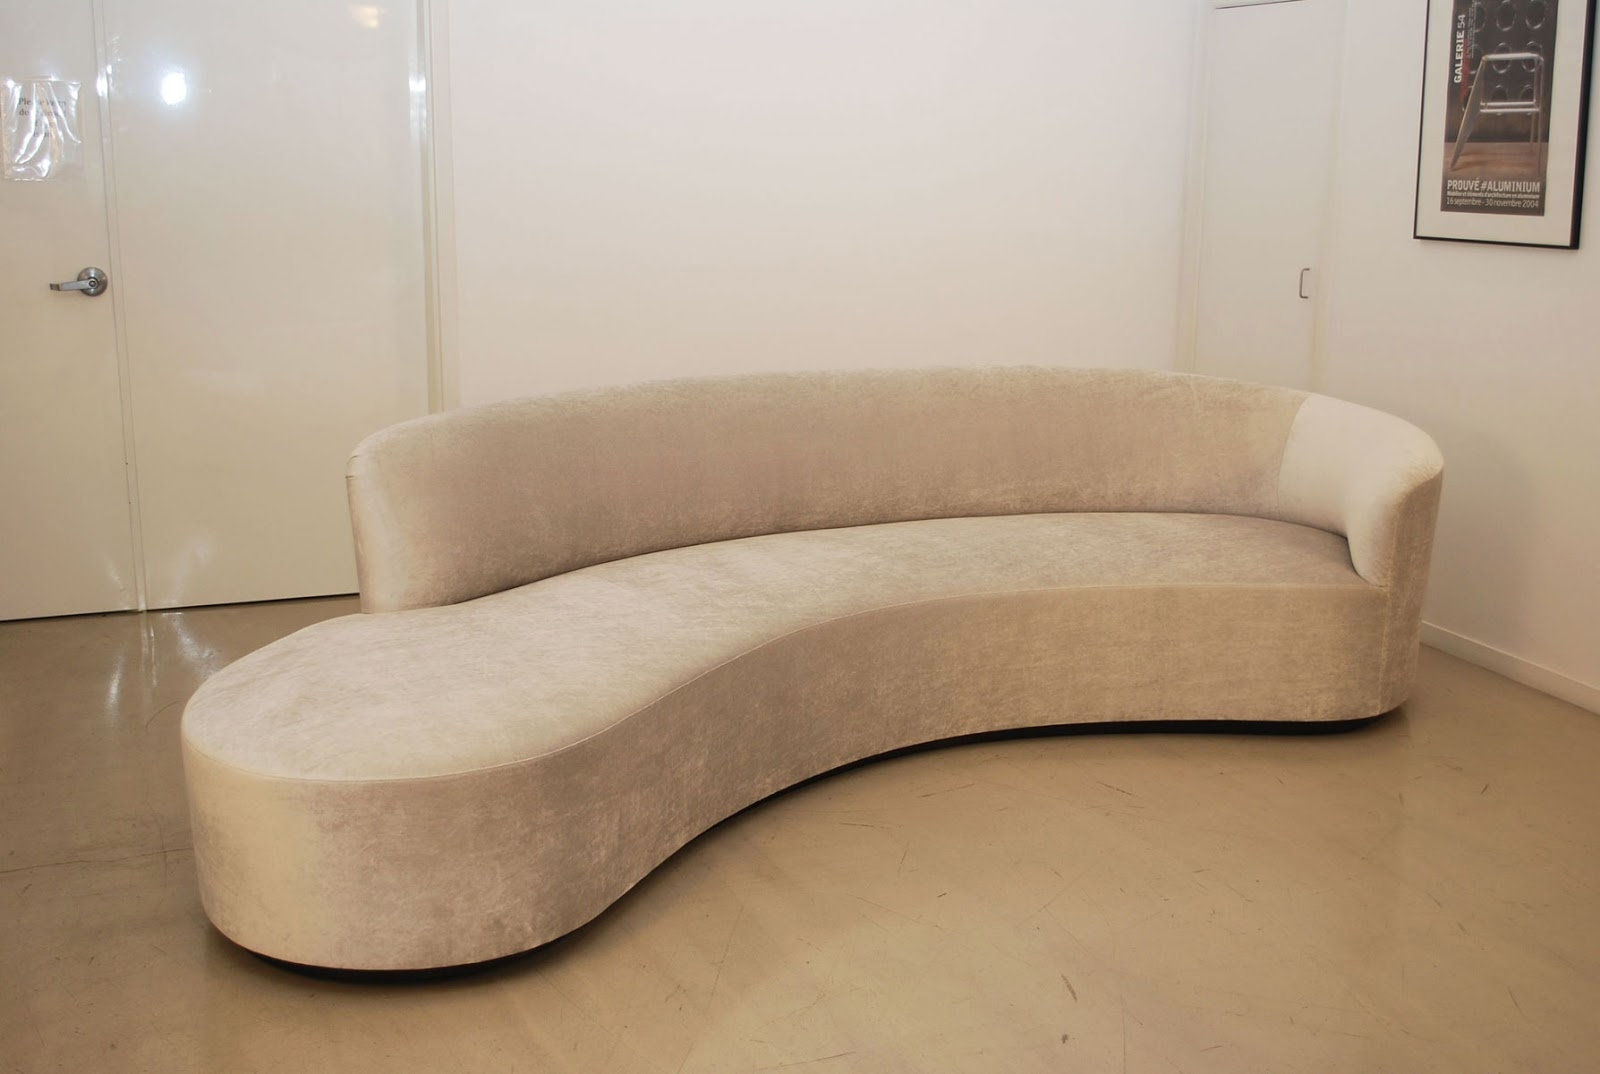 Contemporary Curved Sofa Hereo Sofa Inside Contemporary Curved Sofas (Image 2 of 15)